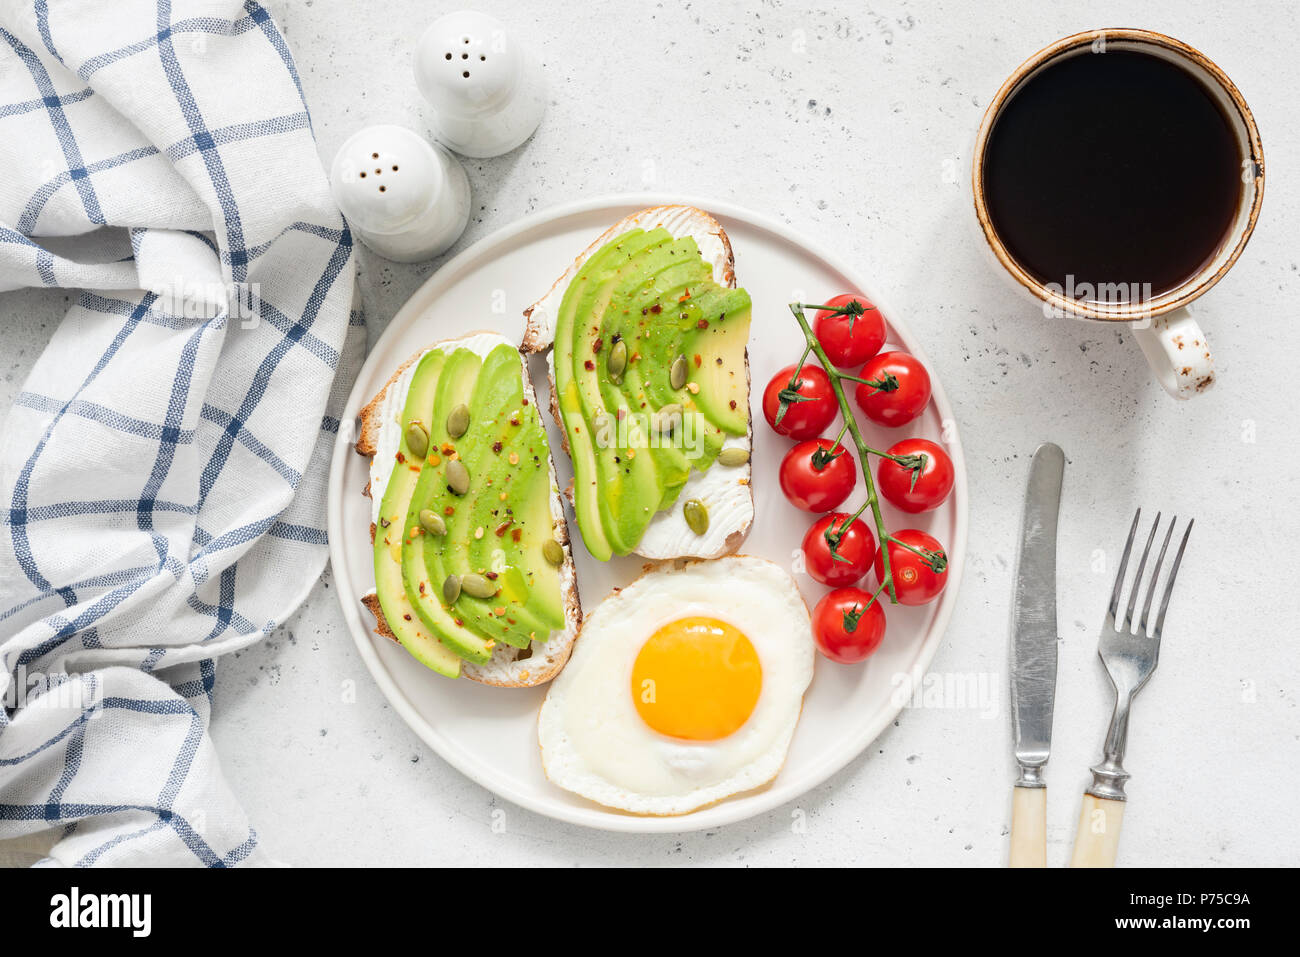 Avocado toast, egg and coffee for breakfast. Top view of healthy breakfast. Two toasts with avocado and cream cheese, sunny side up egg, cherry tomato - Stock Image